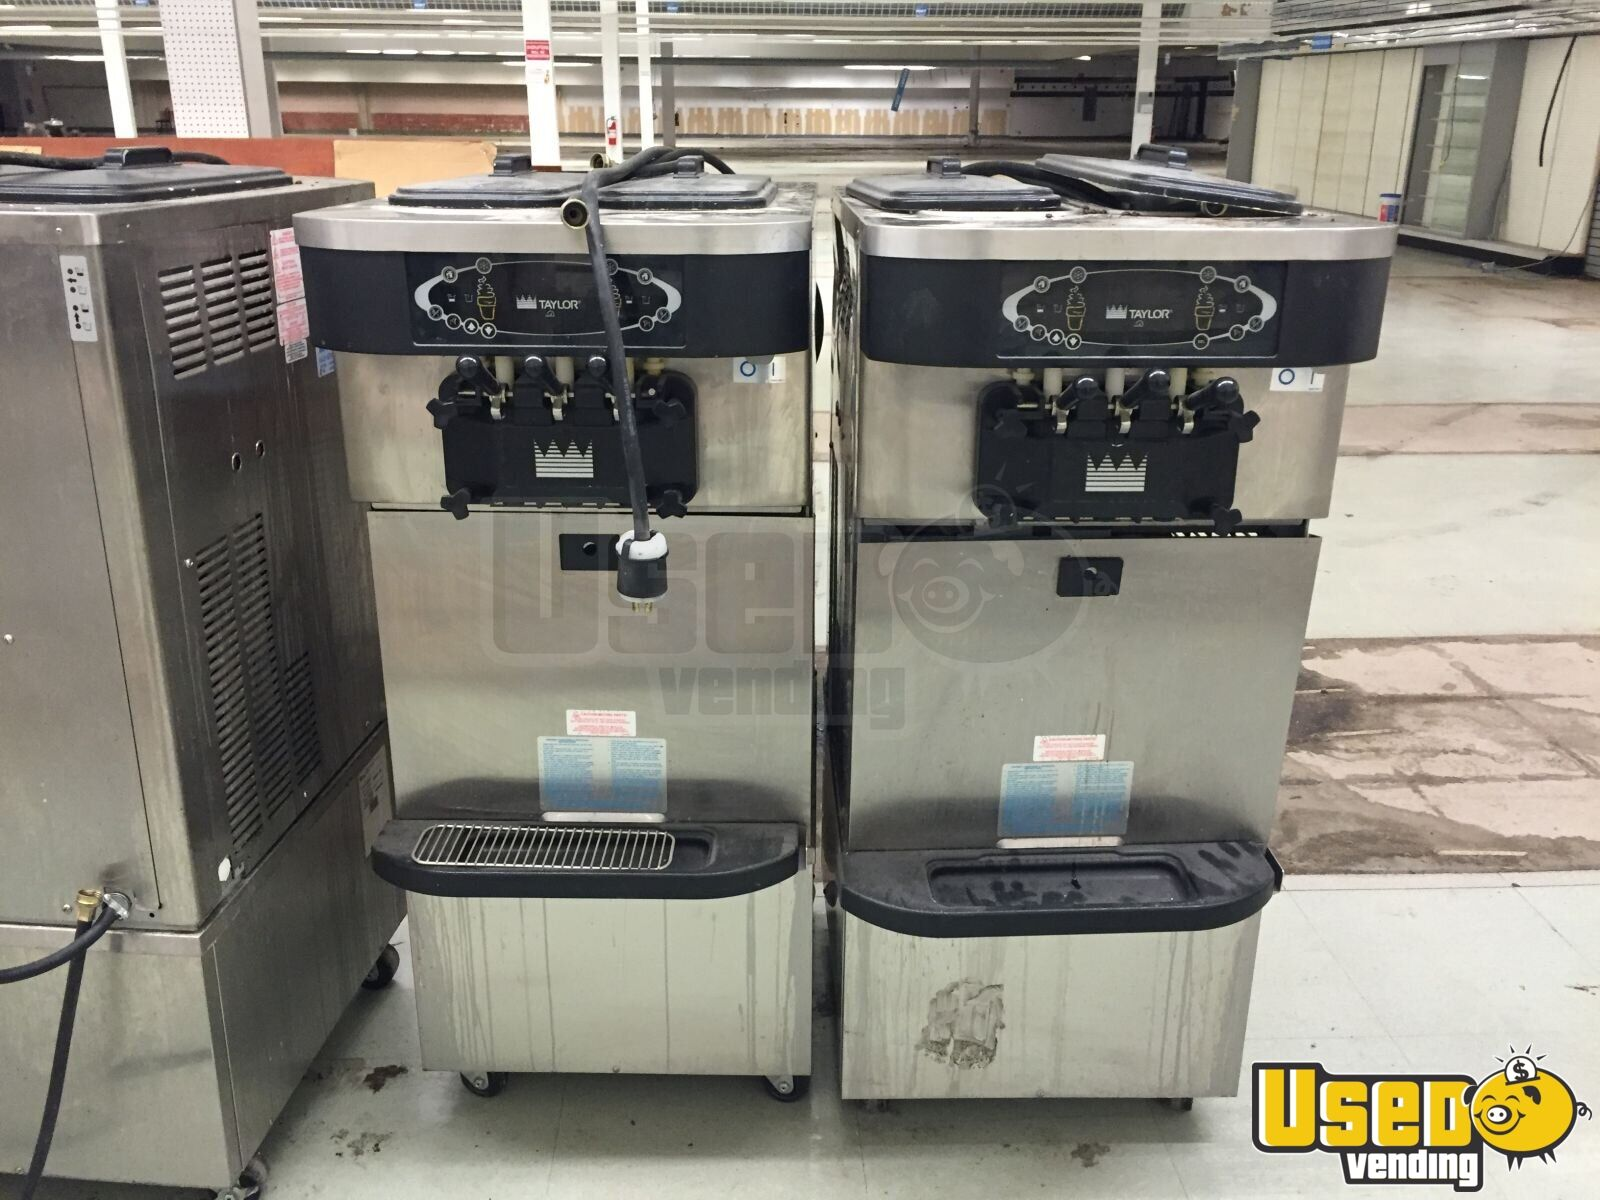 taylor soft serve ice cream commercial ice cream machines for sale in new york. Black Bedroom Furniture Sets. Home Design Ideas